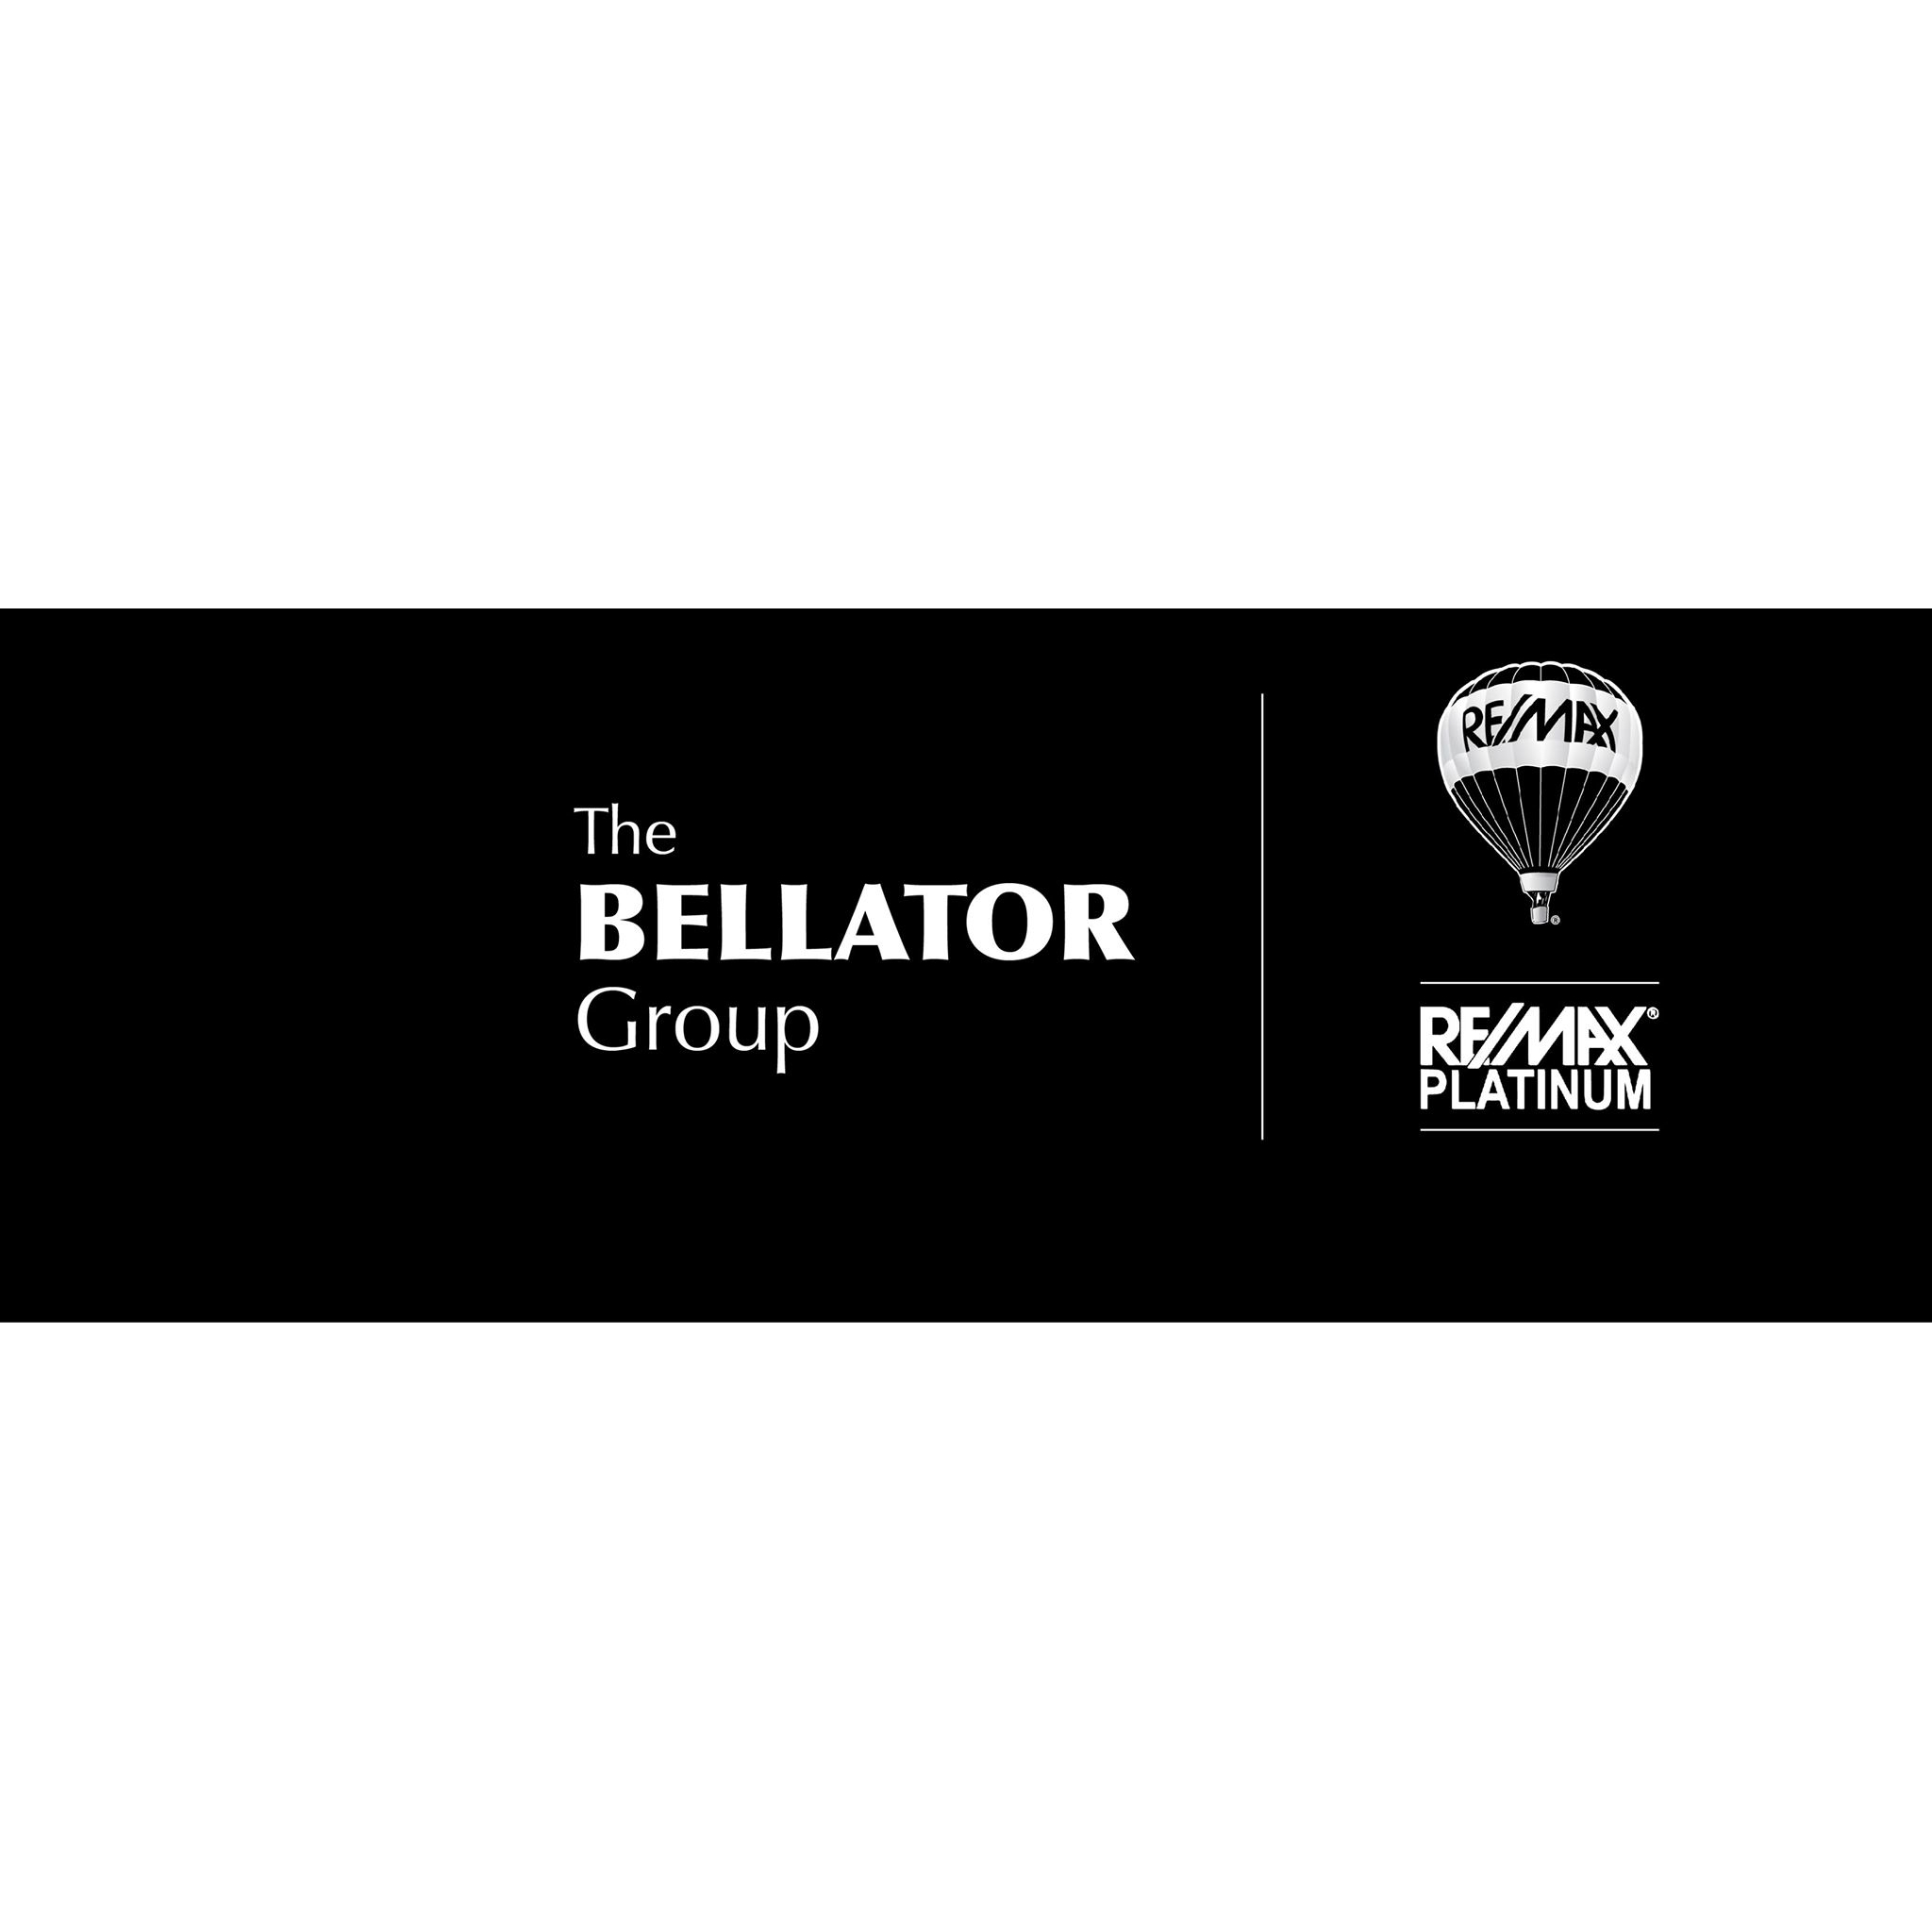 The Bellator Group